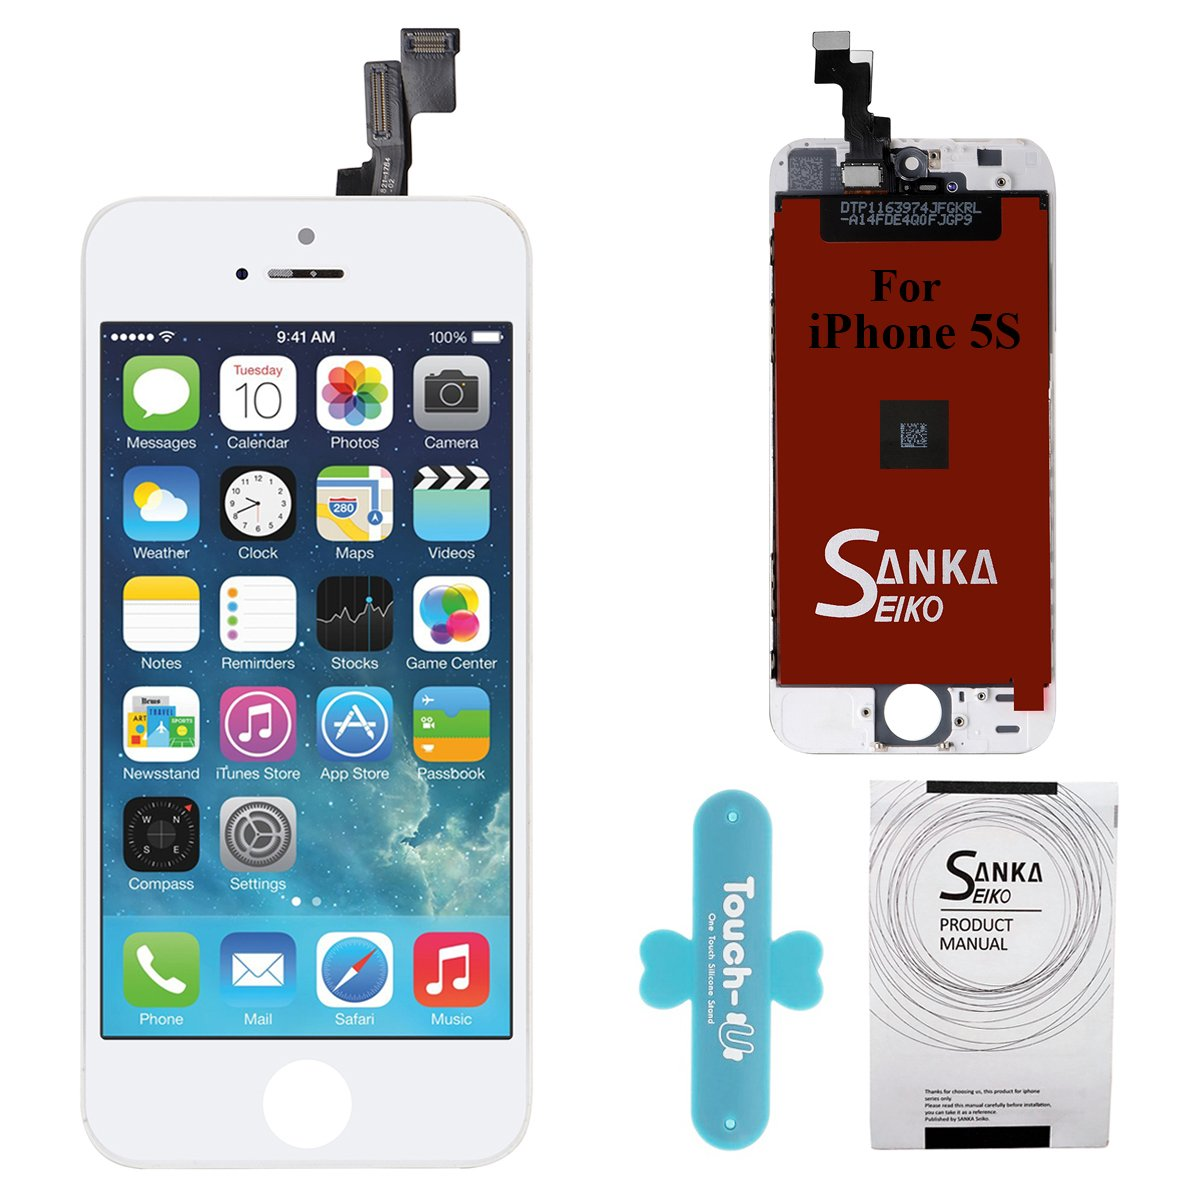 SANKA iPhone 5S LCD Screen Replacement White, Digitizer Display Retina Touch Screen Glass Frame Assembly for iPhone 5S - White (Free Tools Included)